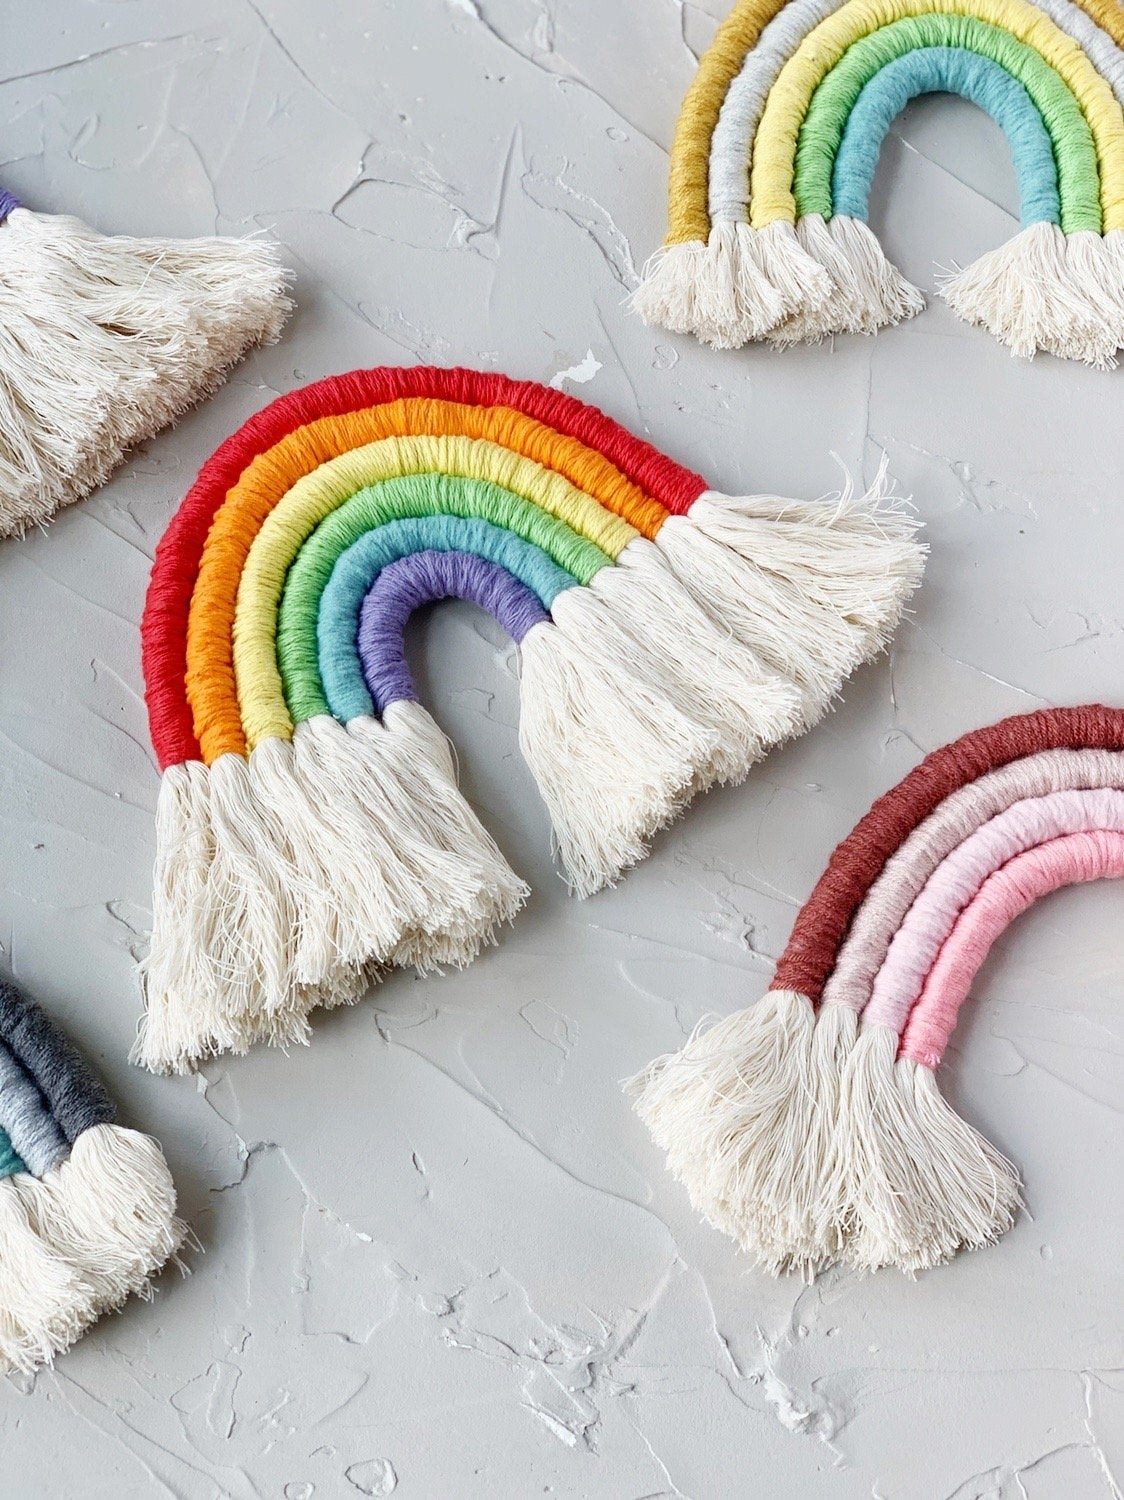 Rope rainbow with natural tassels